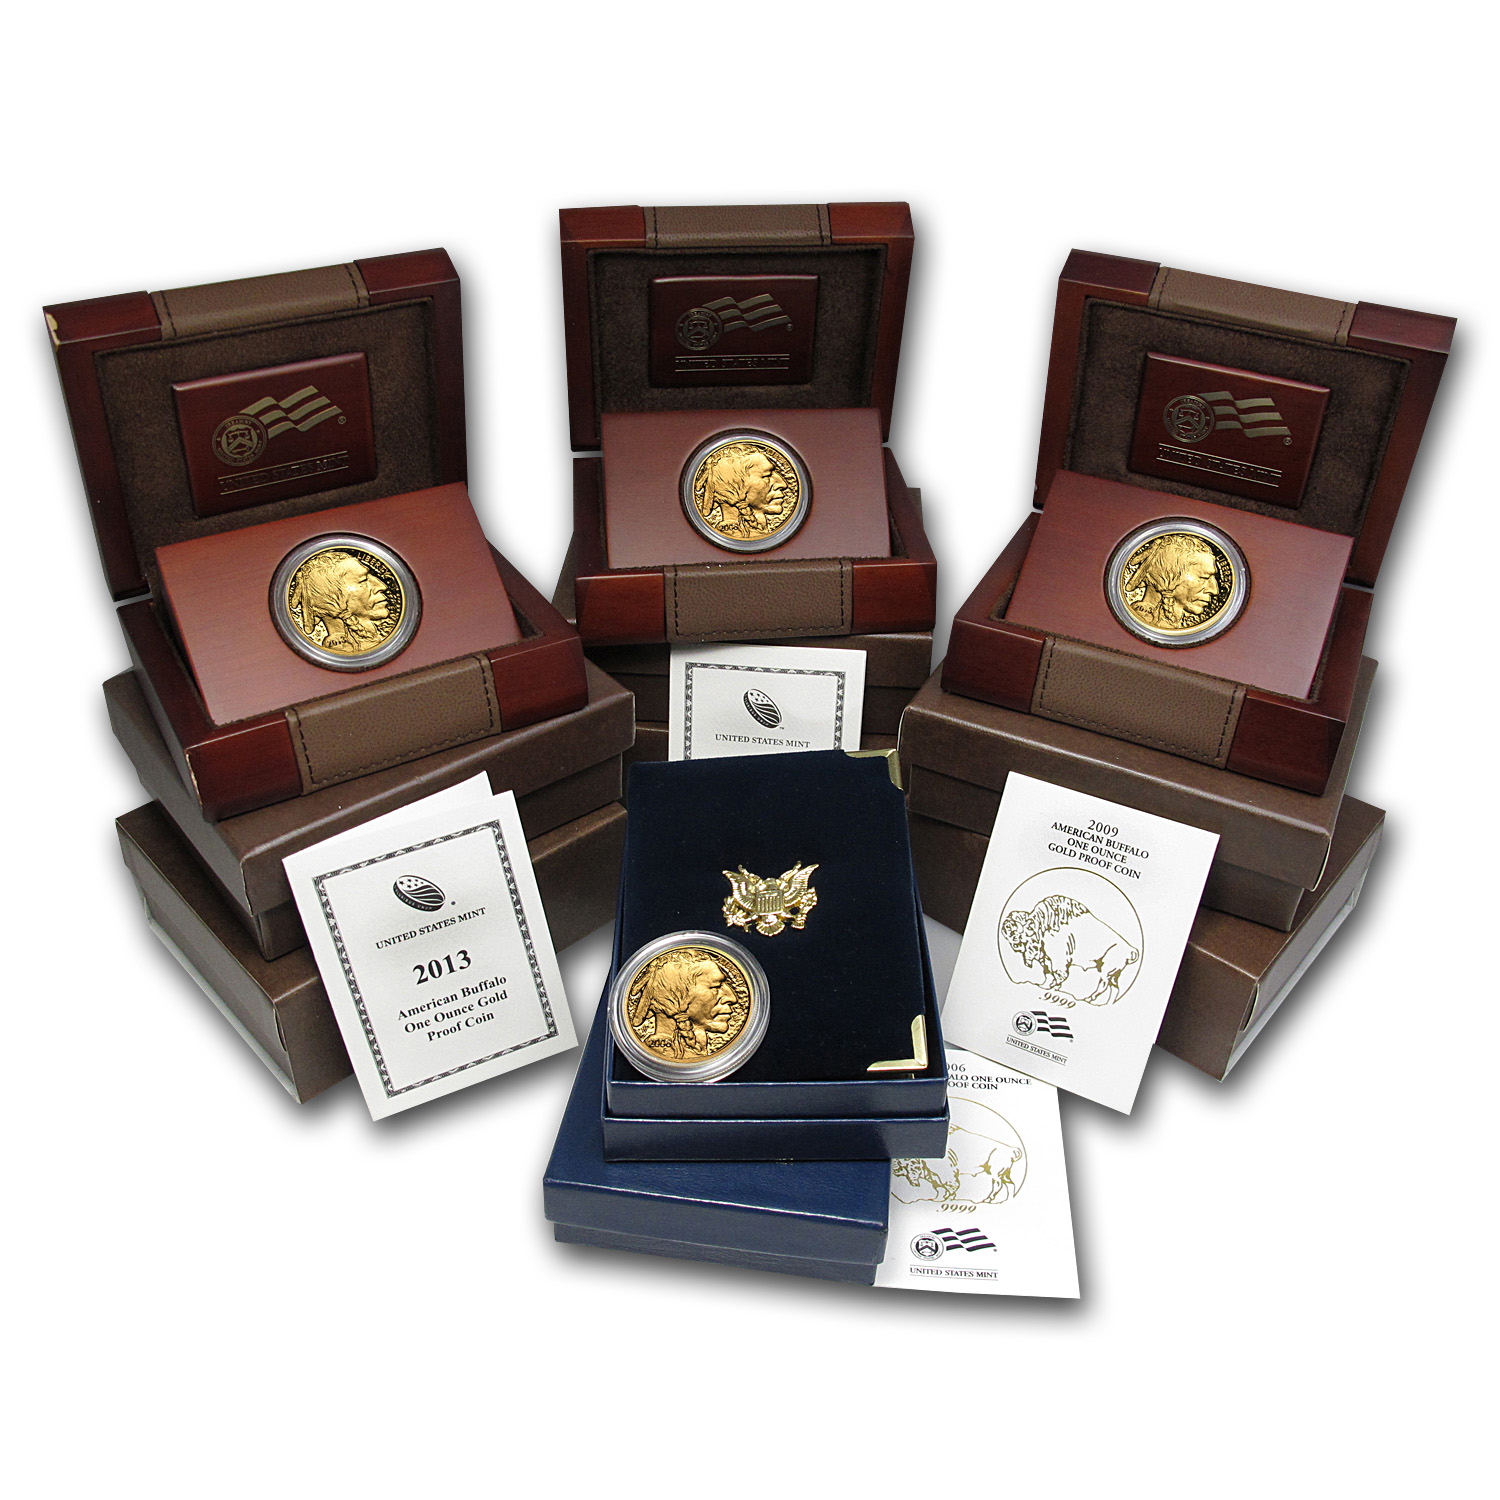 2006-2013 8-Coin 1 oz Proof Gold Buffalo Set (w/Box & COA)